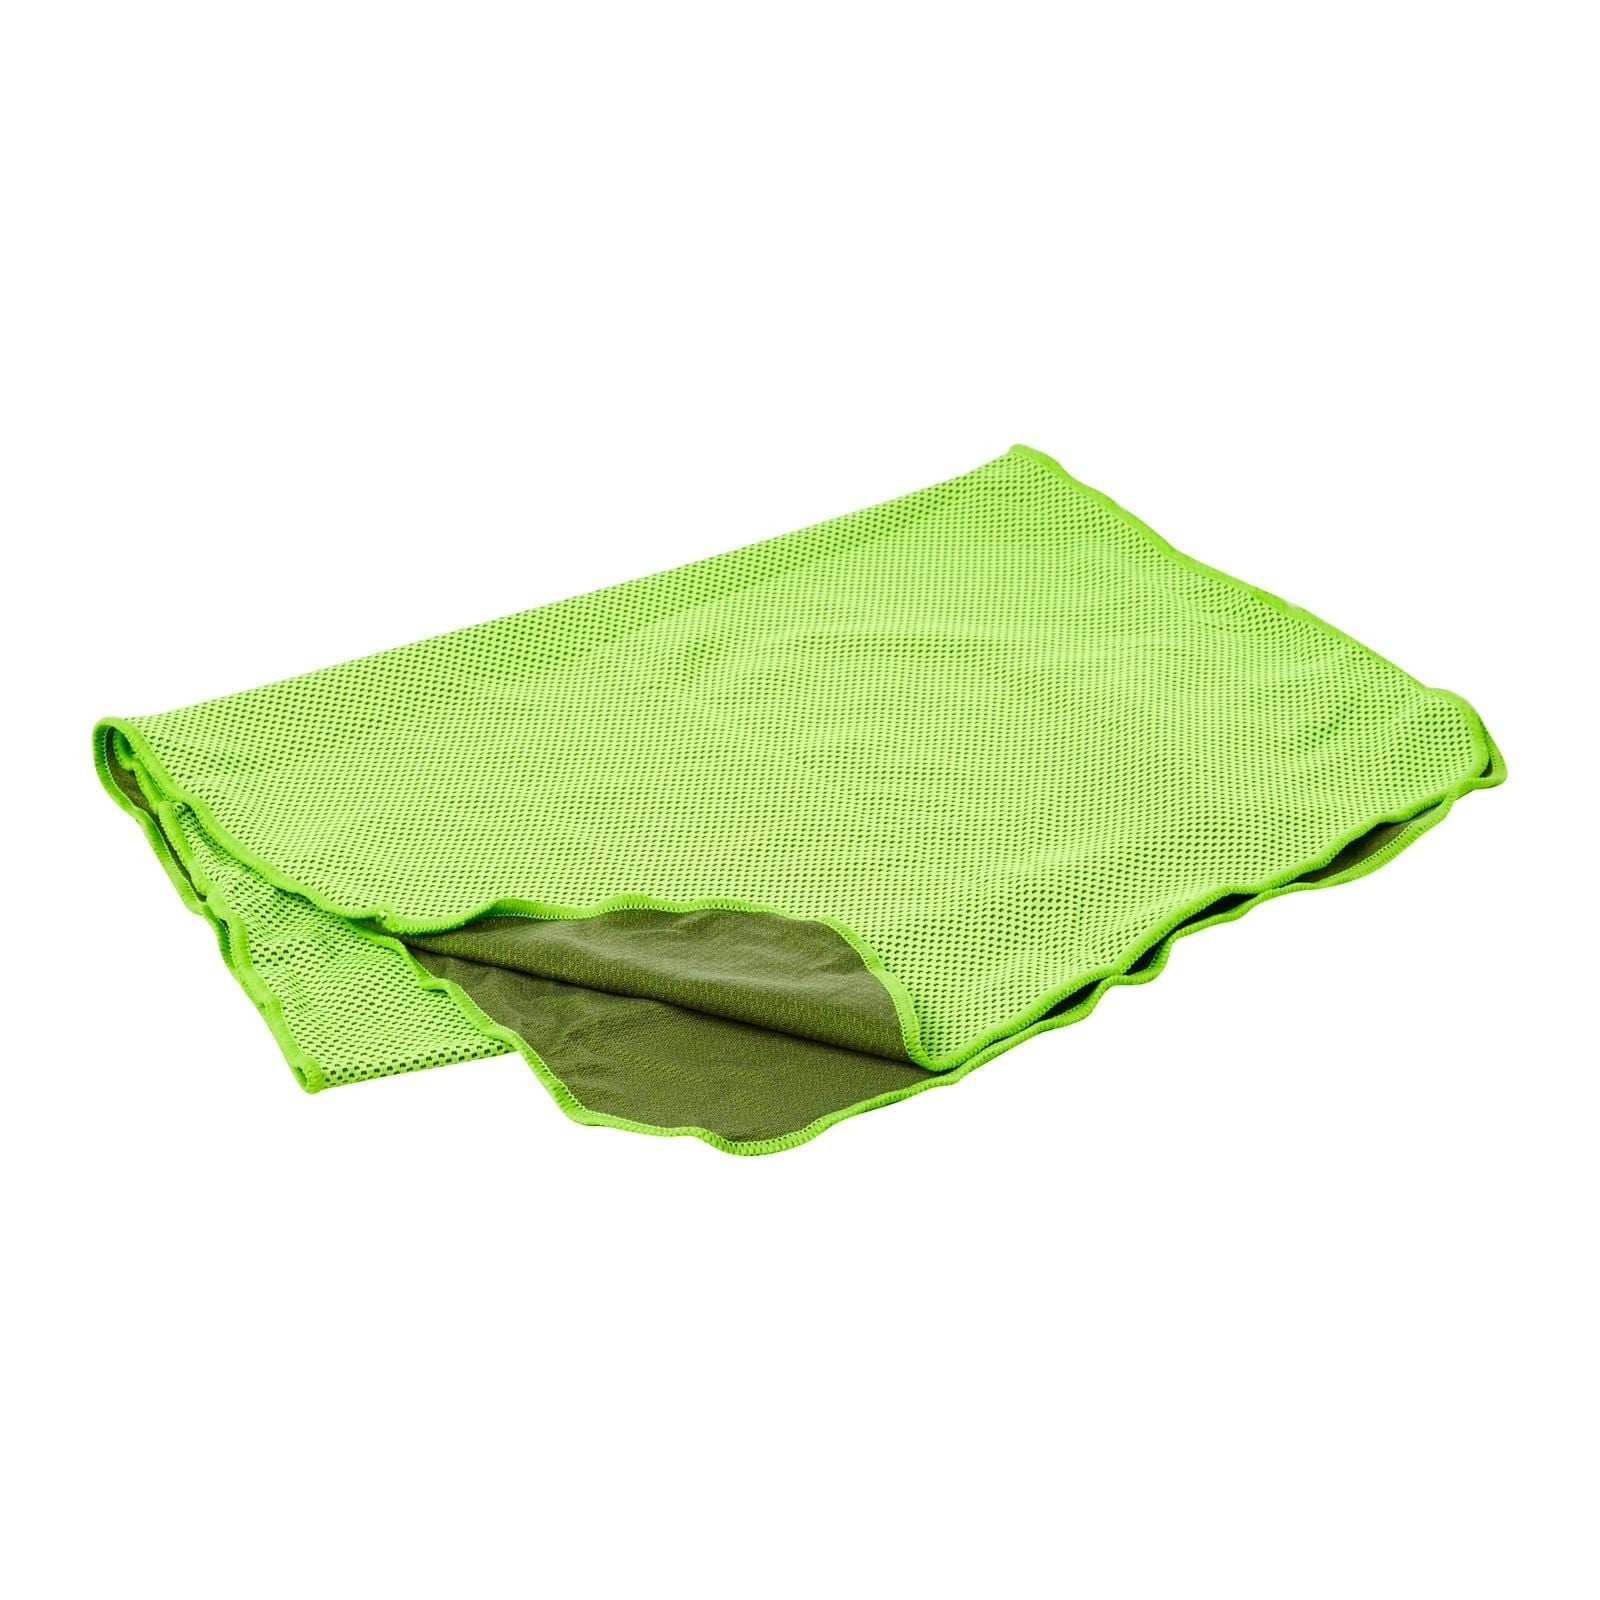 FUNFIT Coolite Sports Towel In Neon Lime